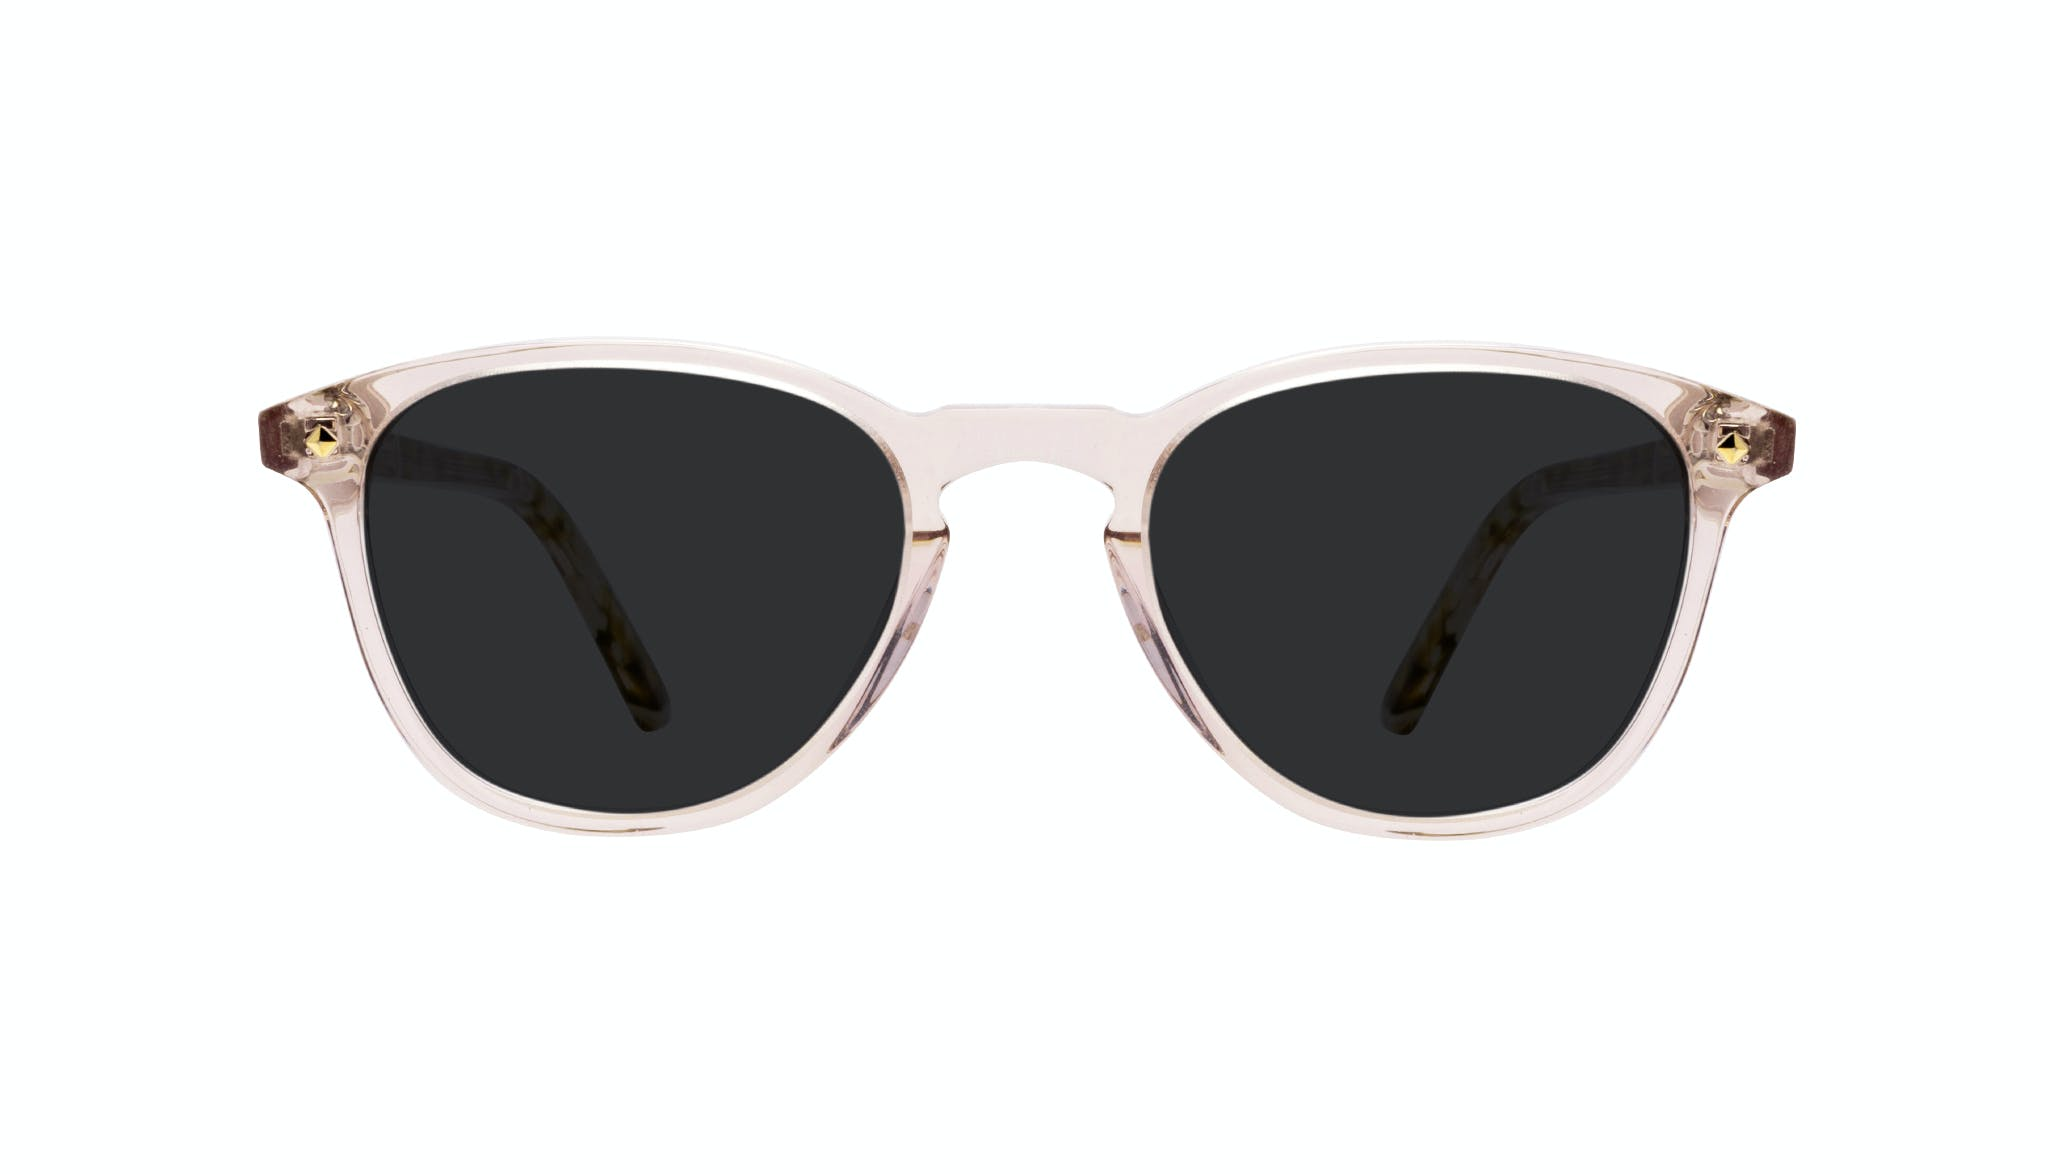 Affordable Fashion Glasses Round Sunglasses Women Crush Rose Front